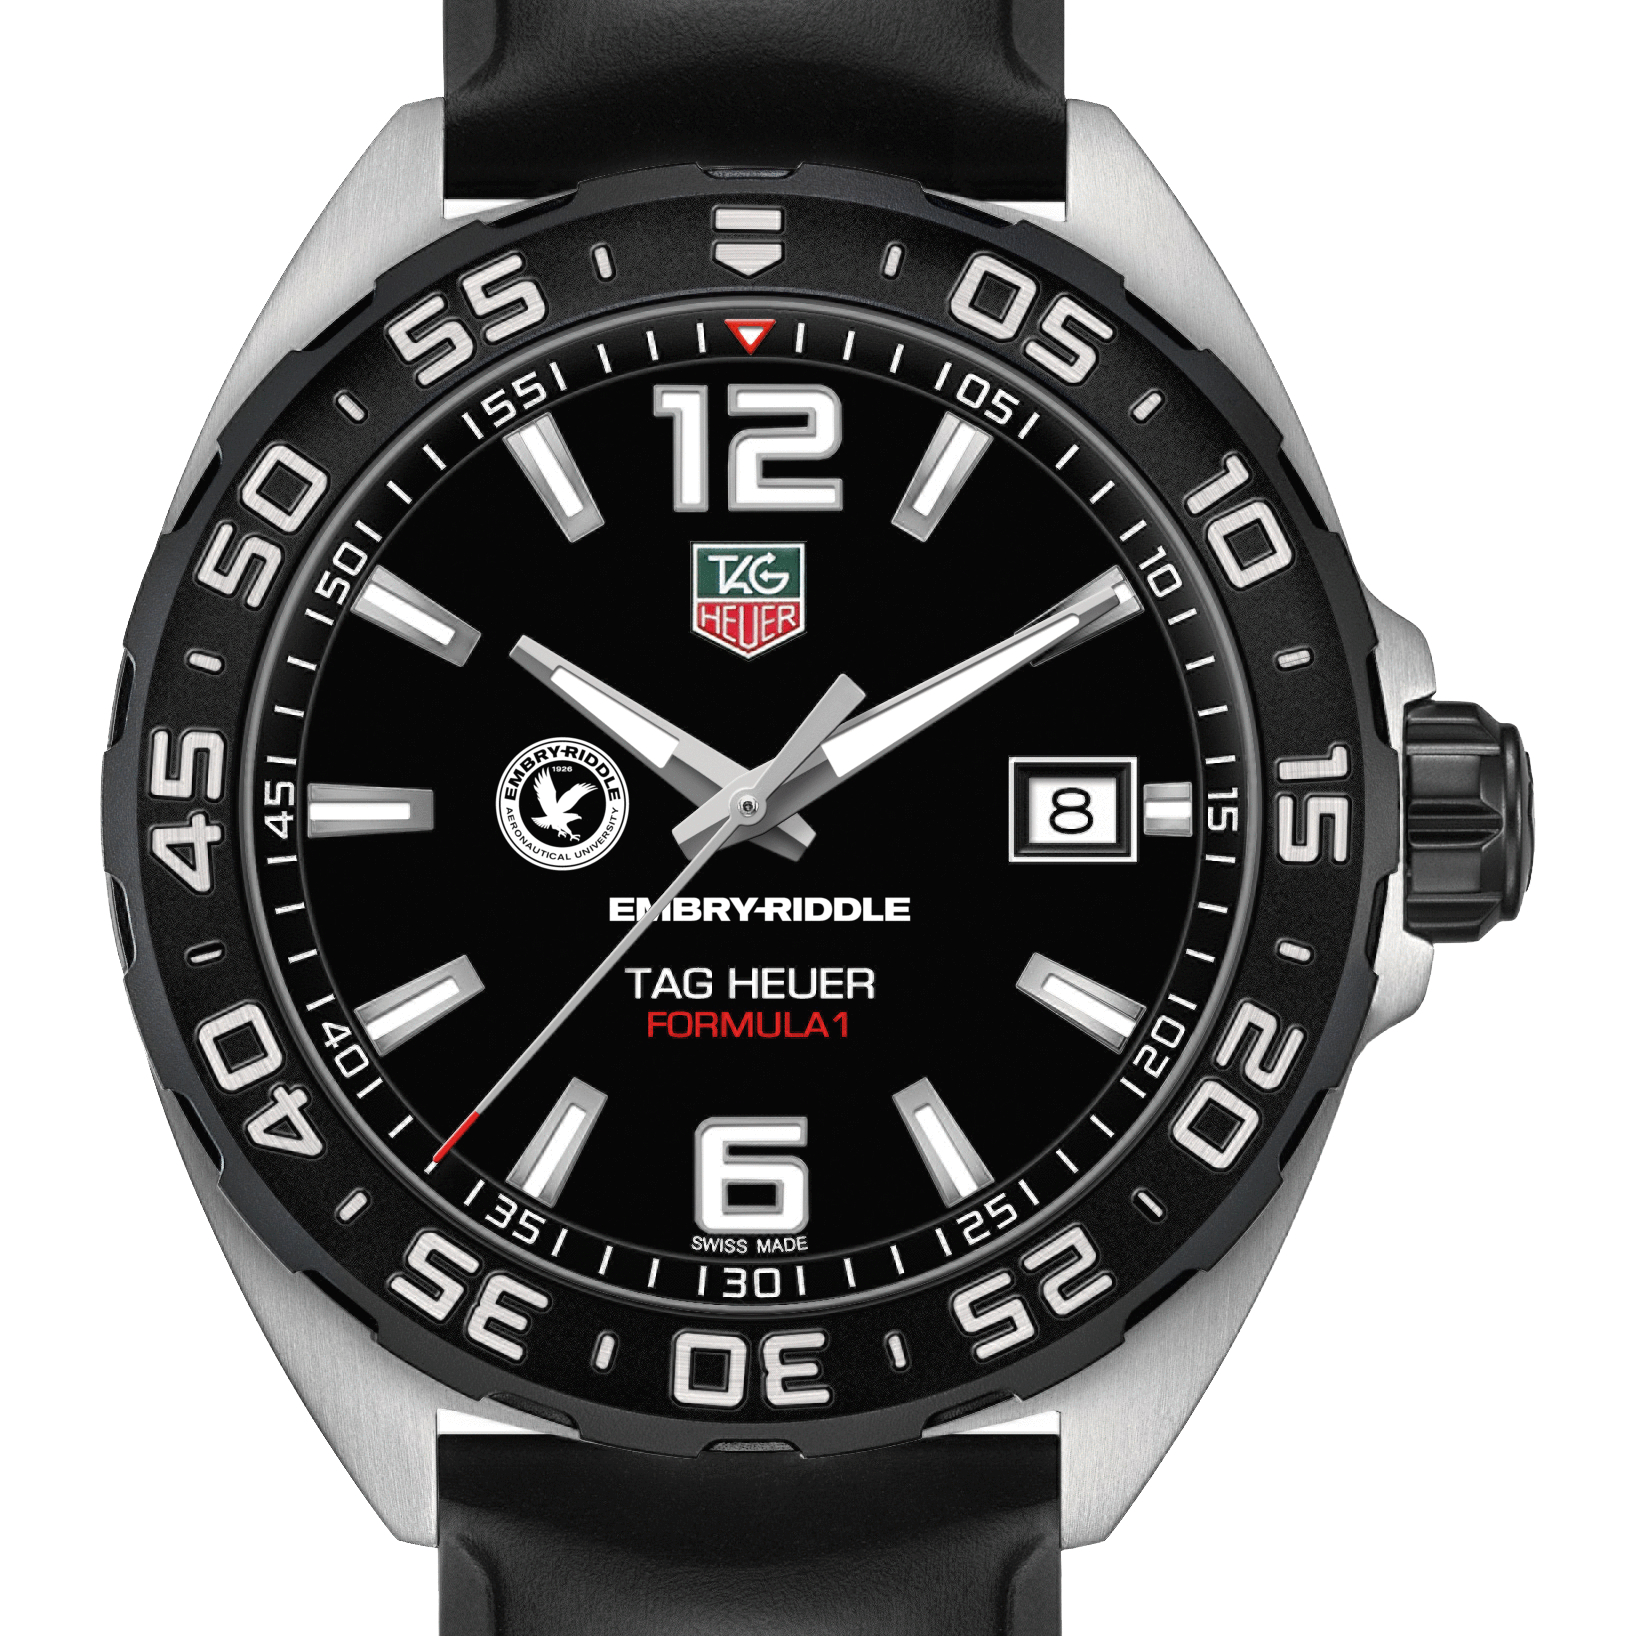 Embry-Riddle Men's TAG Heuer Formula 1 with Black Dial